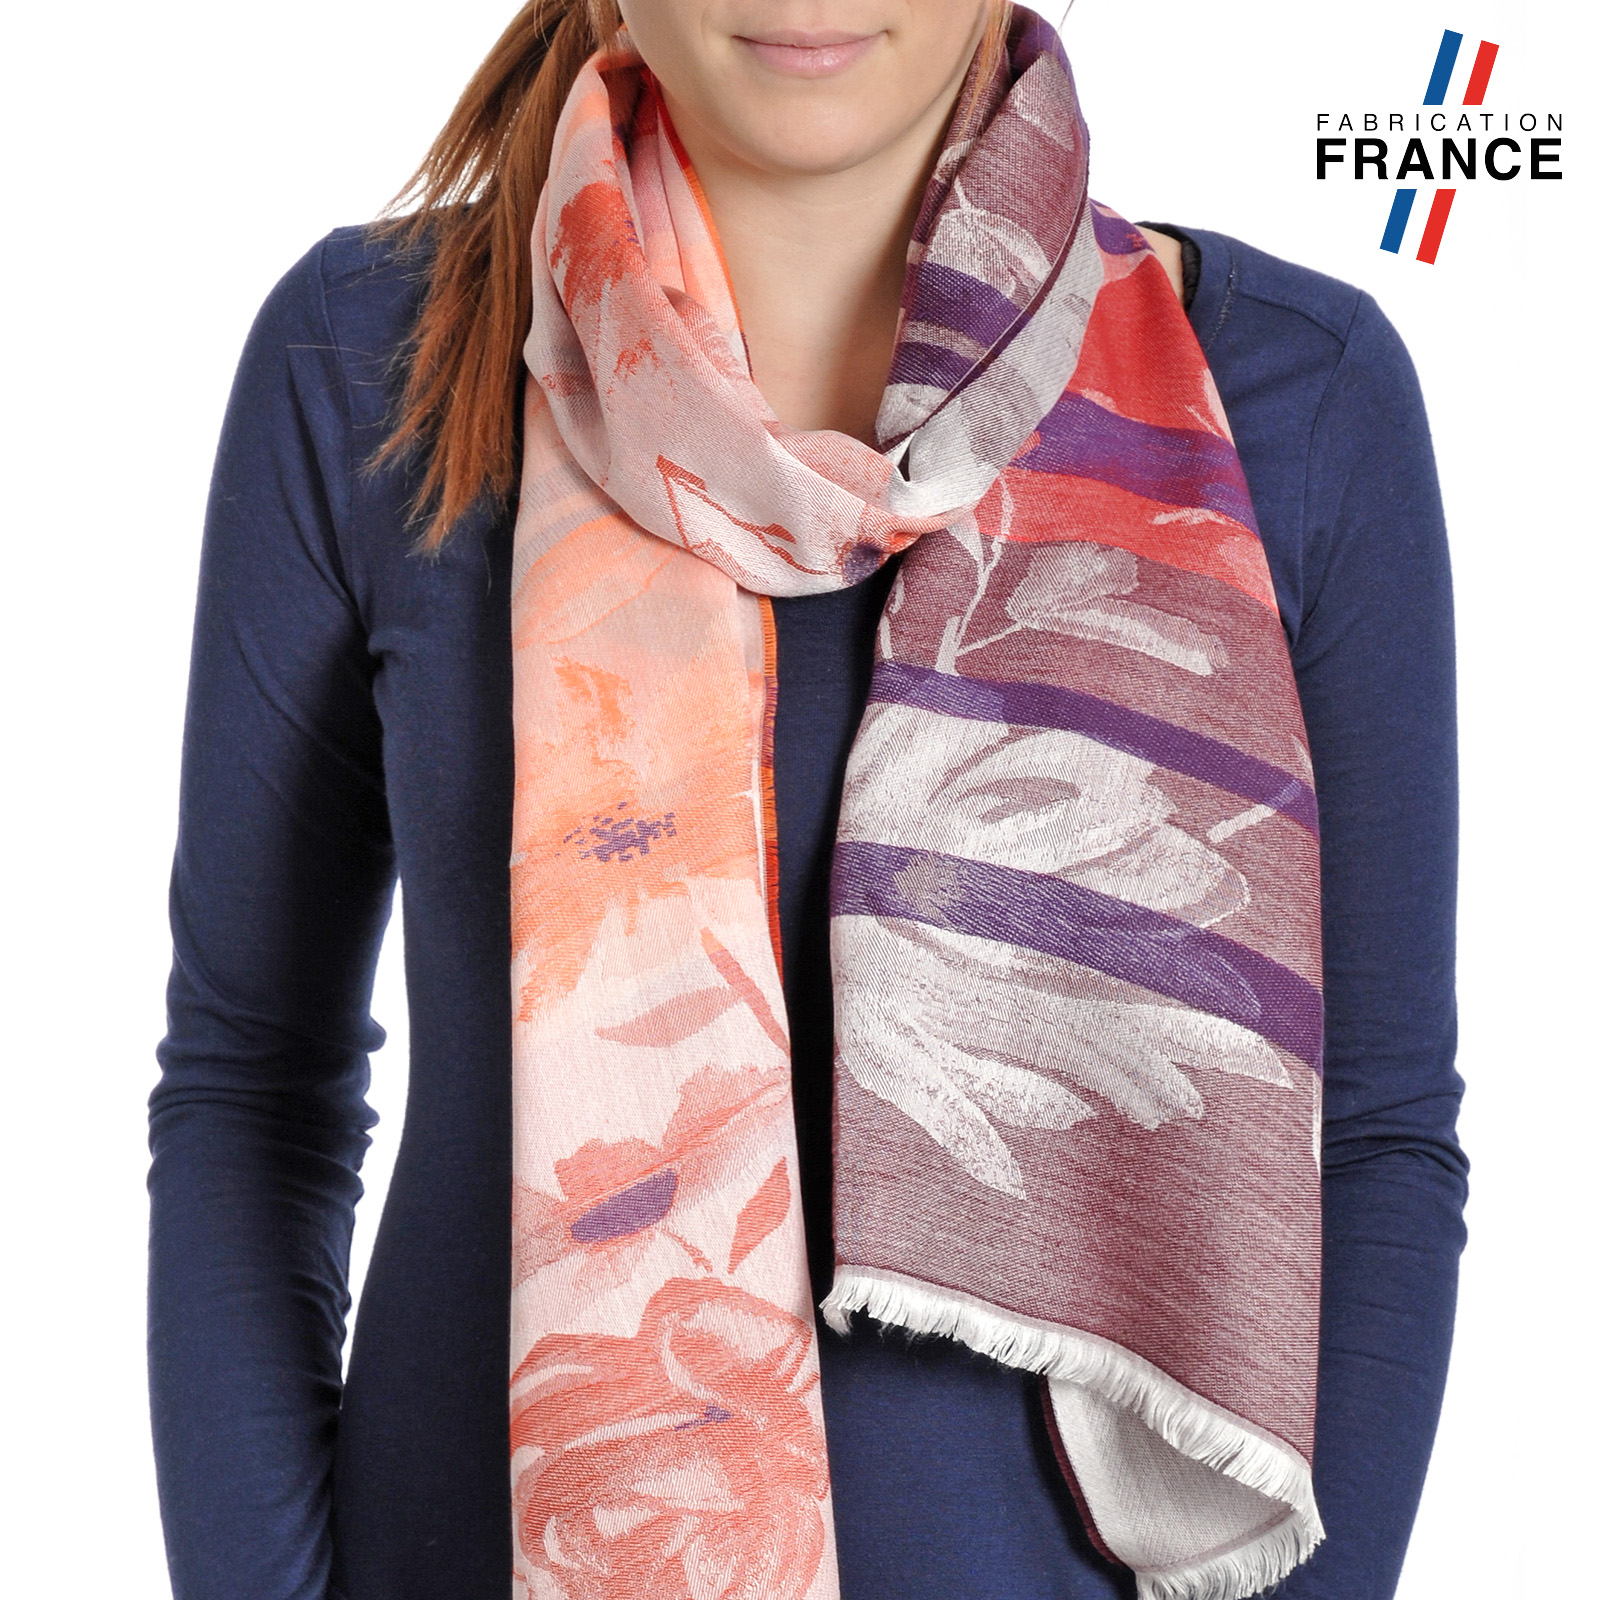 AT-04226-VF16-P-LB_FR-echarpe-legere-violet-rose-qualicoq